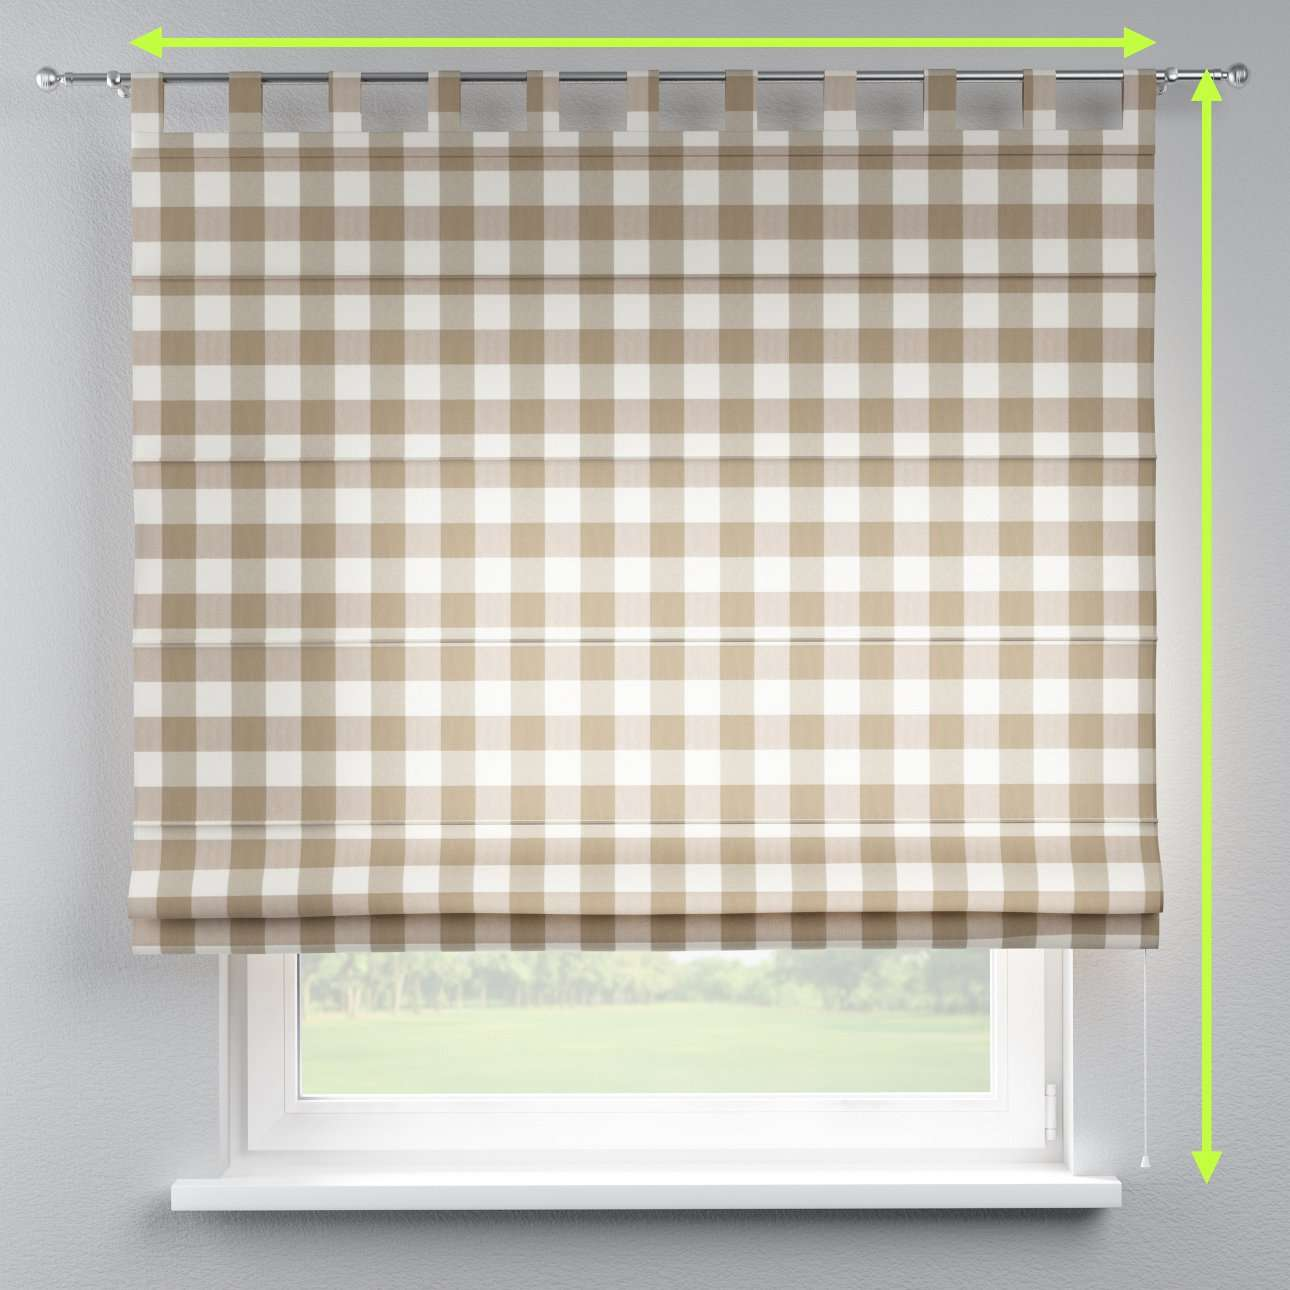 Verona tab top roman blind in collection Quadro, fabric: 136-08